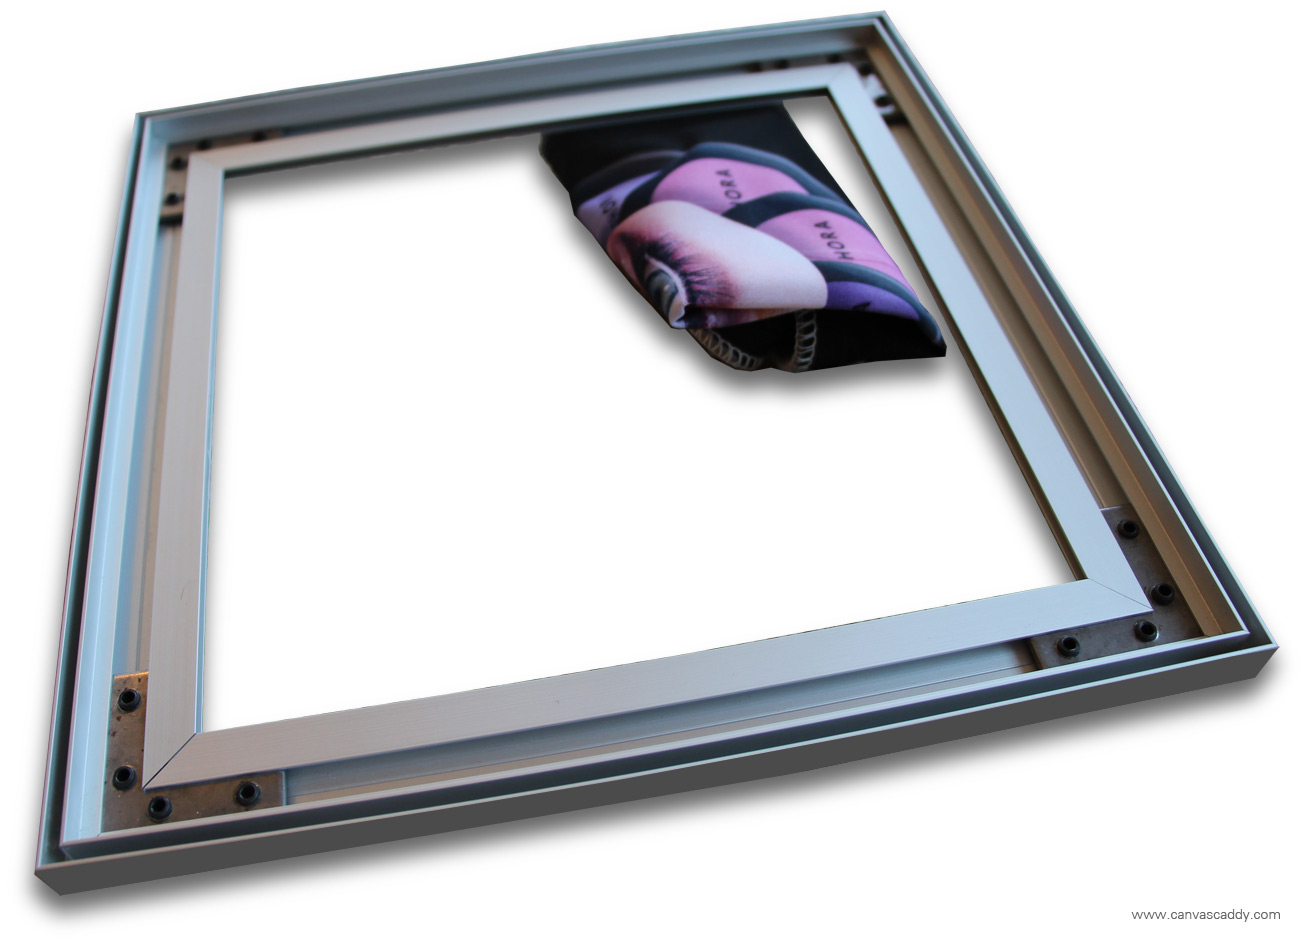 Silicone Edge Graphics (SEG) Fabric Frame